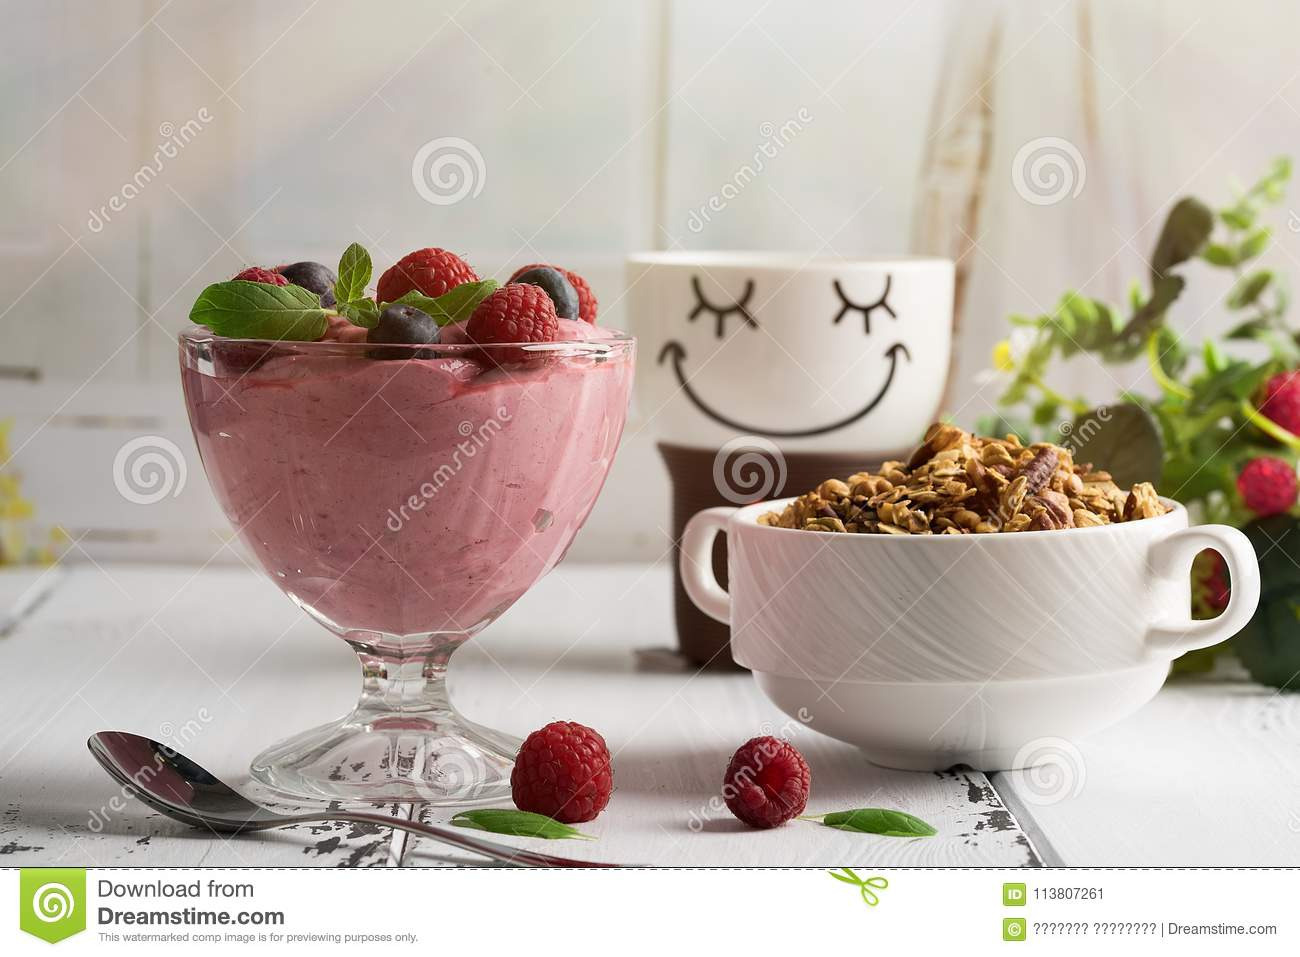 Healthy breakfast: Curd souffle with fresh blueberry, raspberries, granola and tea